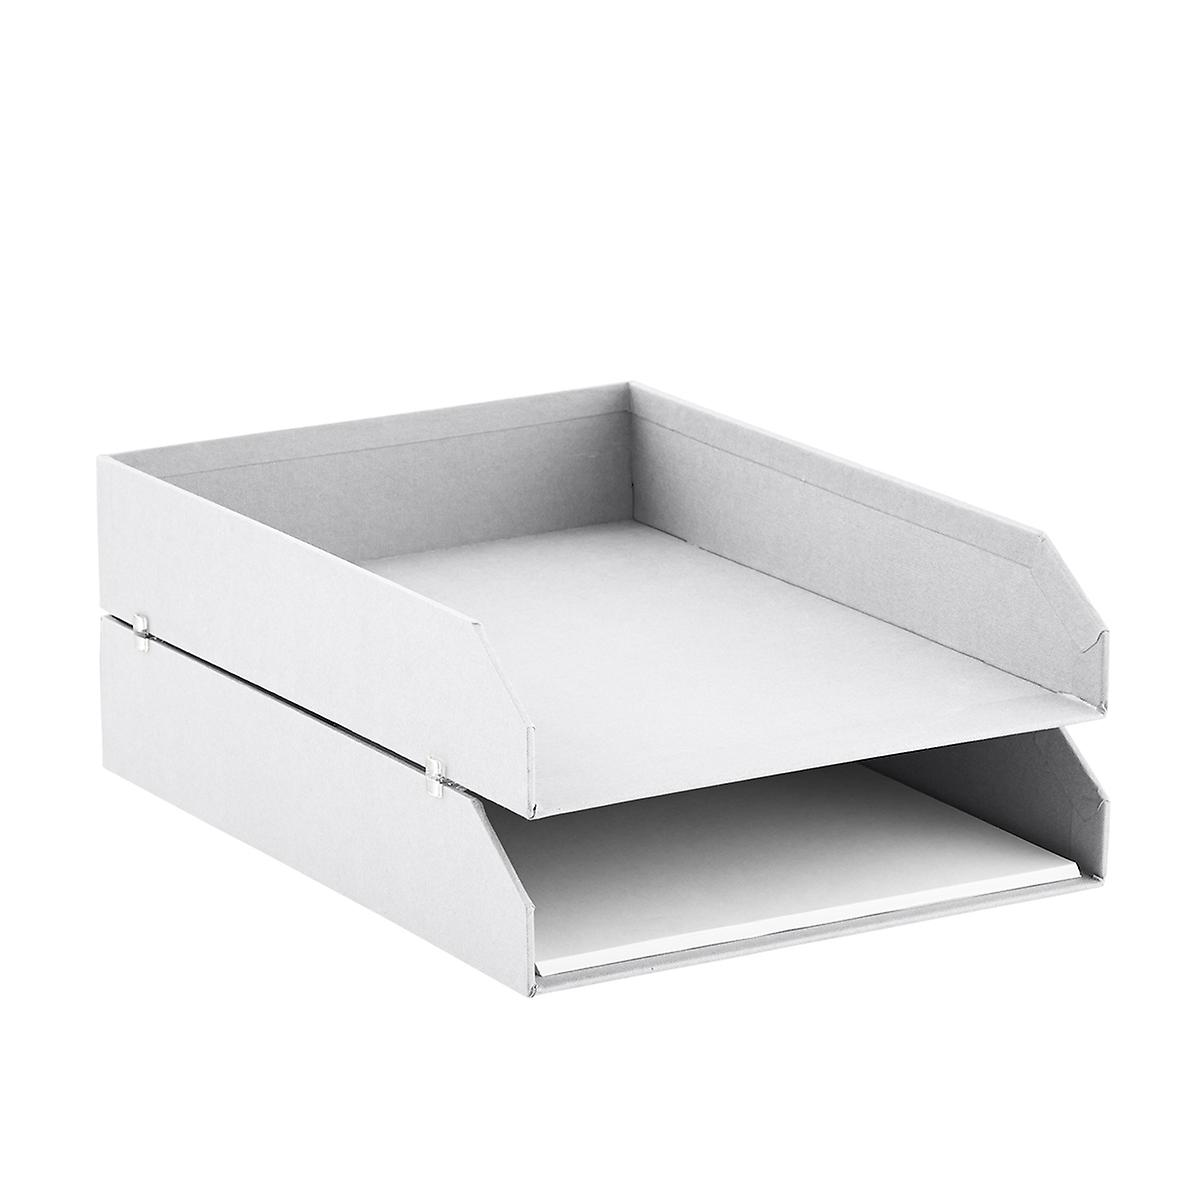 Bigso White Stockholm Stackable Letter Trays Set of 2 | The